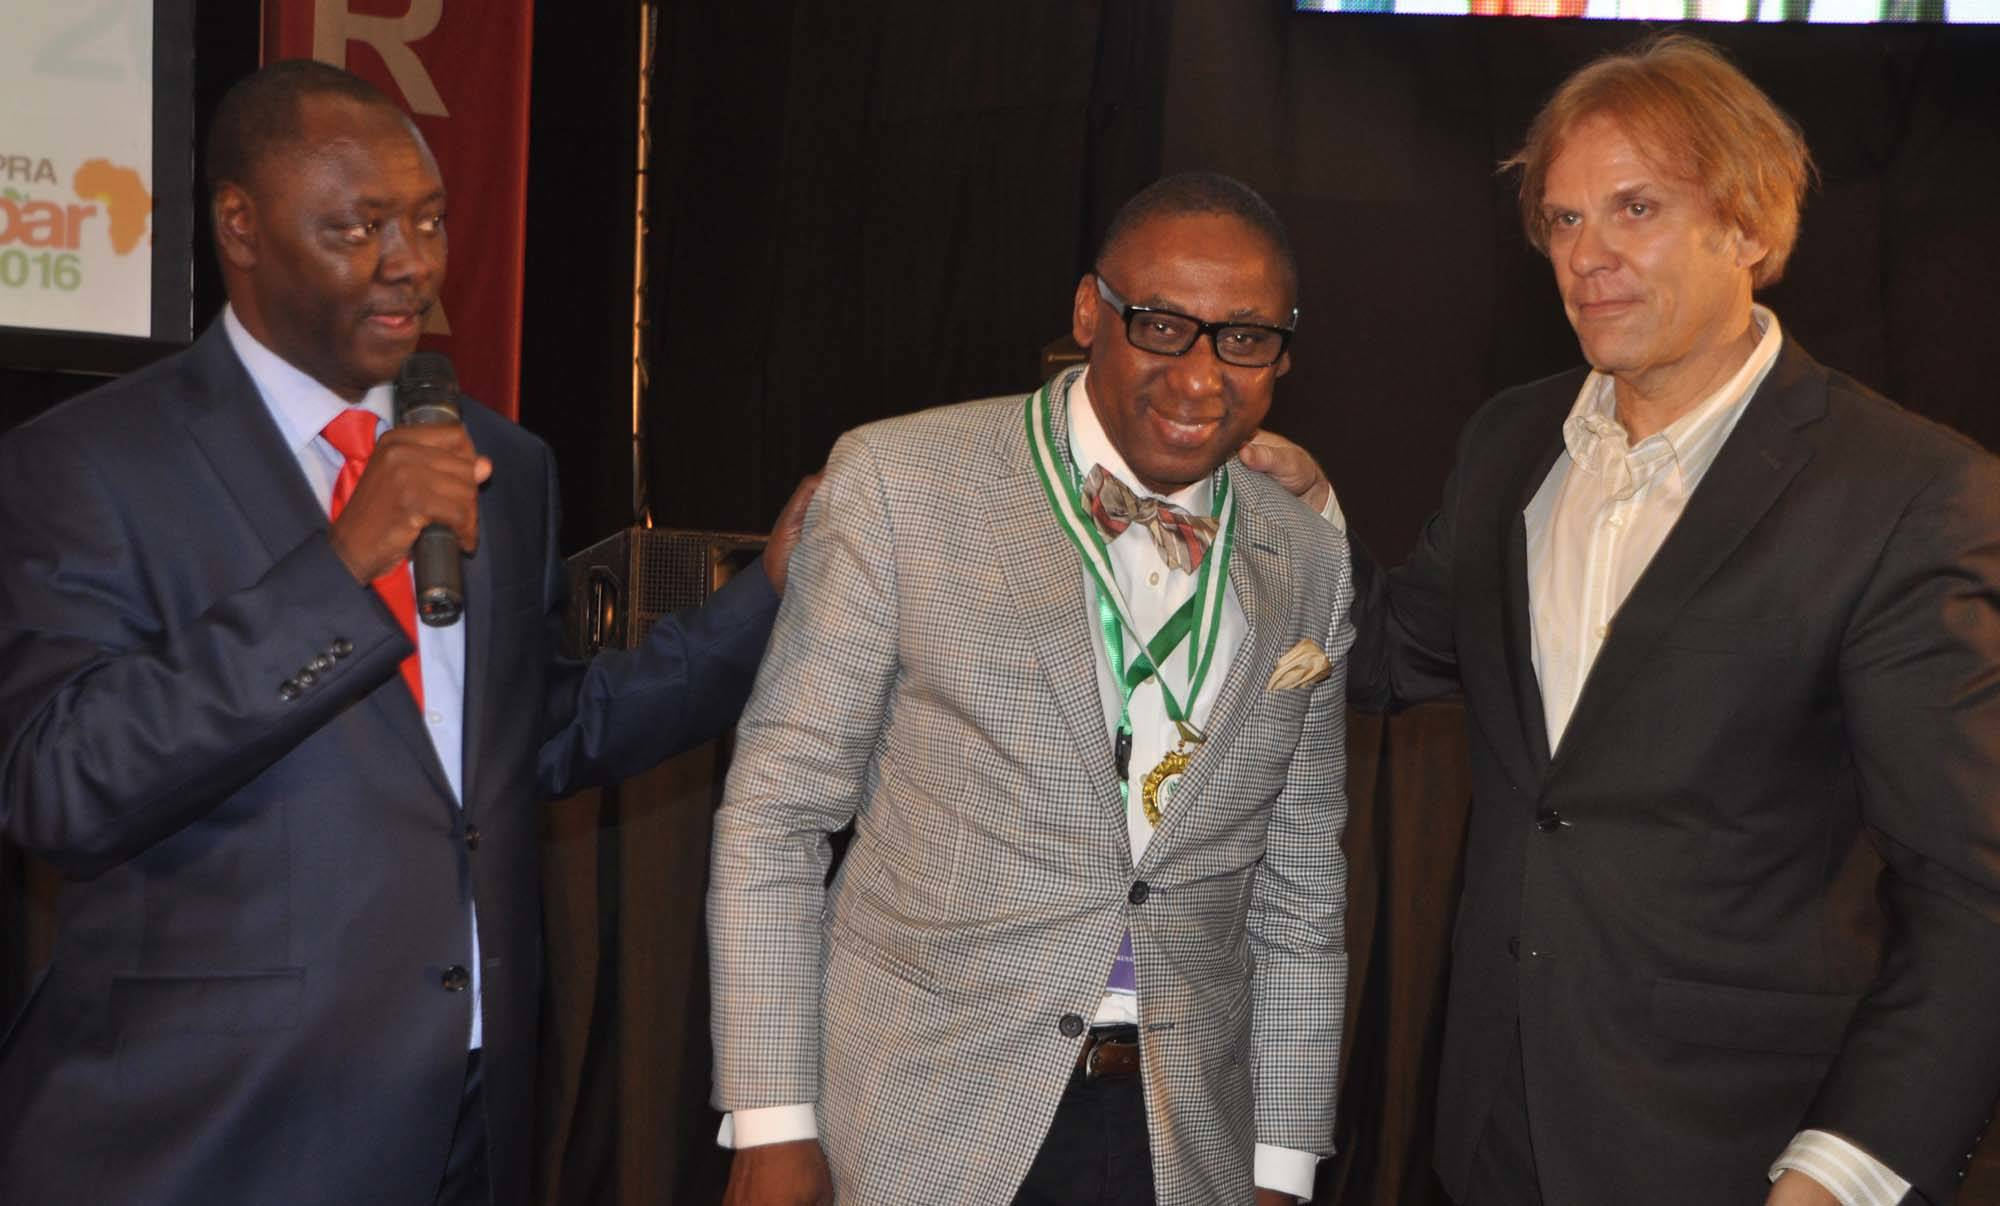 Peter Mutie, outgoing President of the African Public Relations Association (APRA) (left) presents the newly elected President,Yomi Badejo-Okusanya to delegates at the just concluded APRA Calabar 2016 Conference. With them isBart de Vries, President of the International Public Relations Association (IPRA)